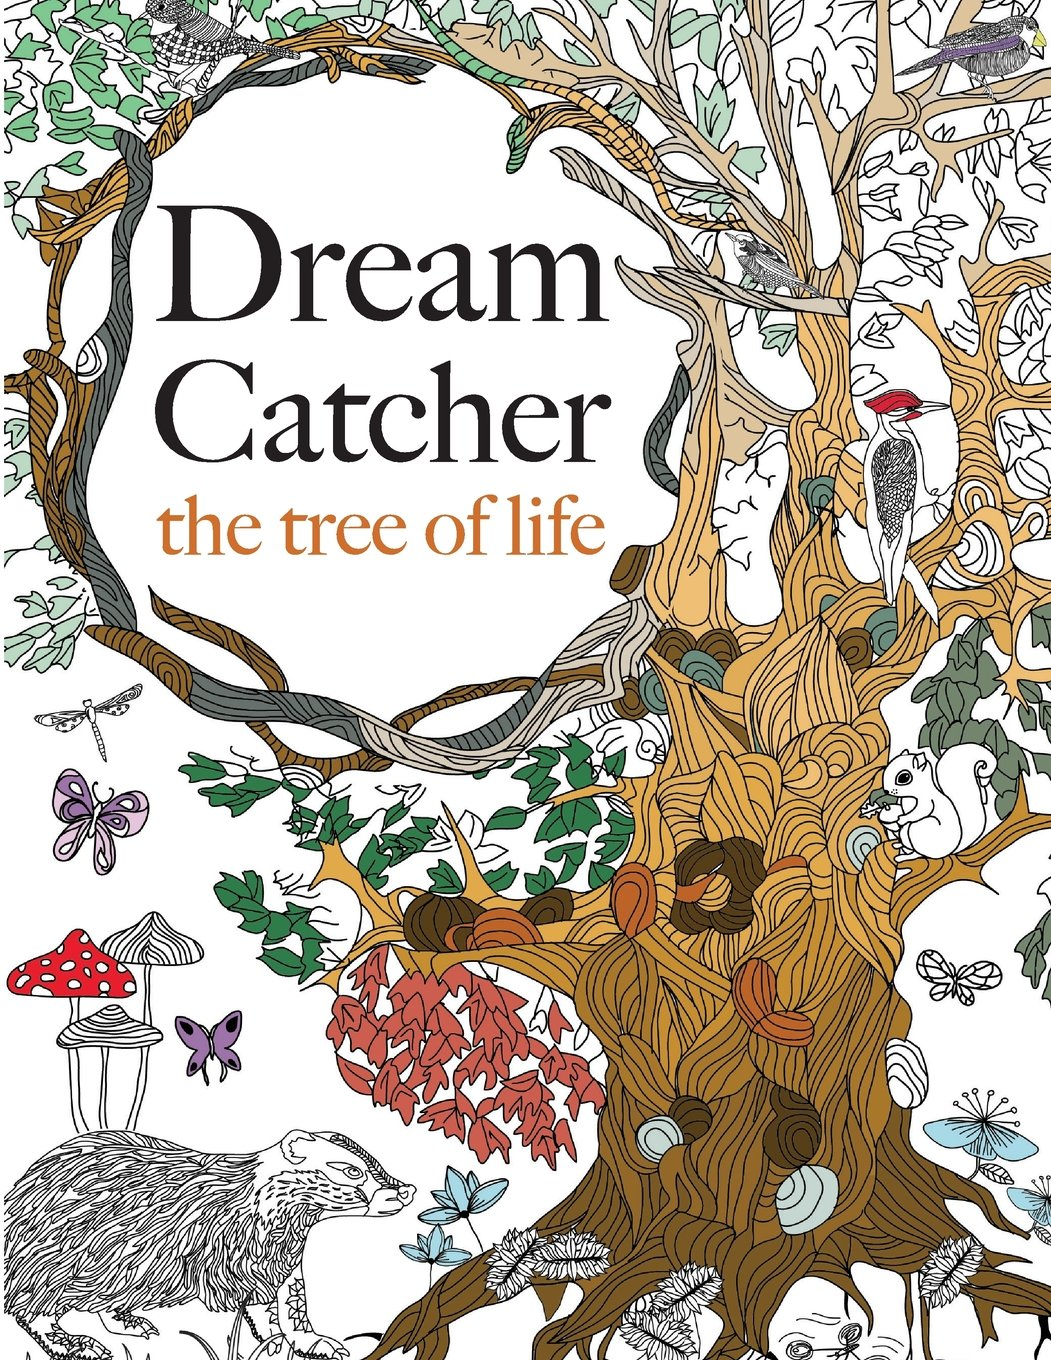 Dream Catcher the tree of life Christina Rose